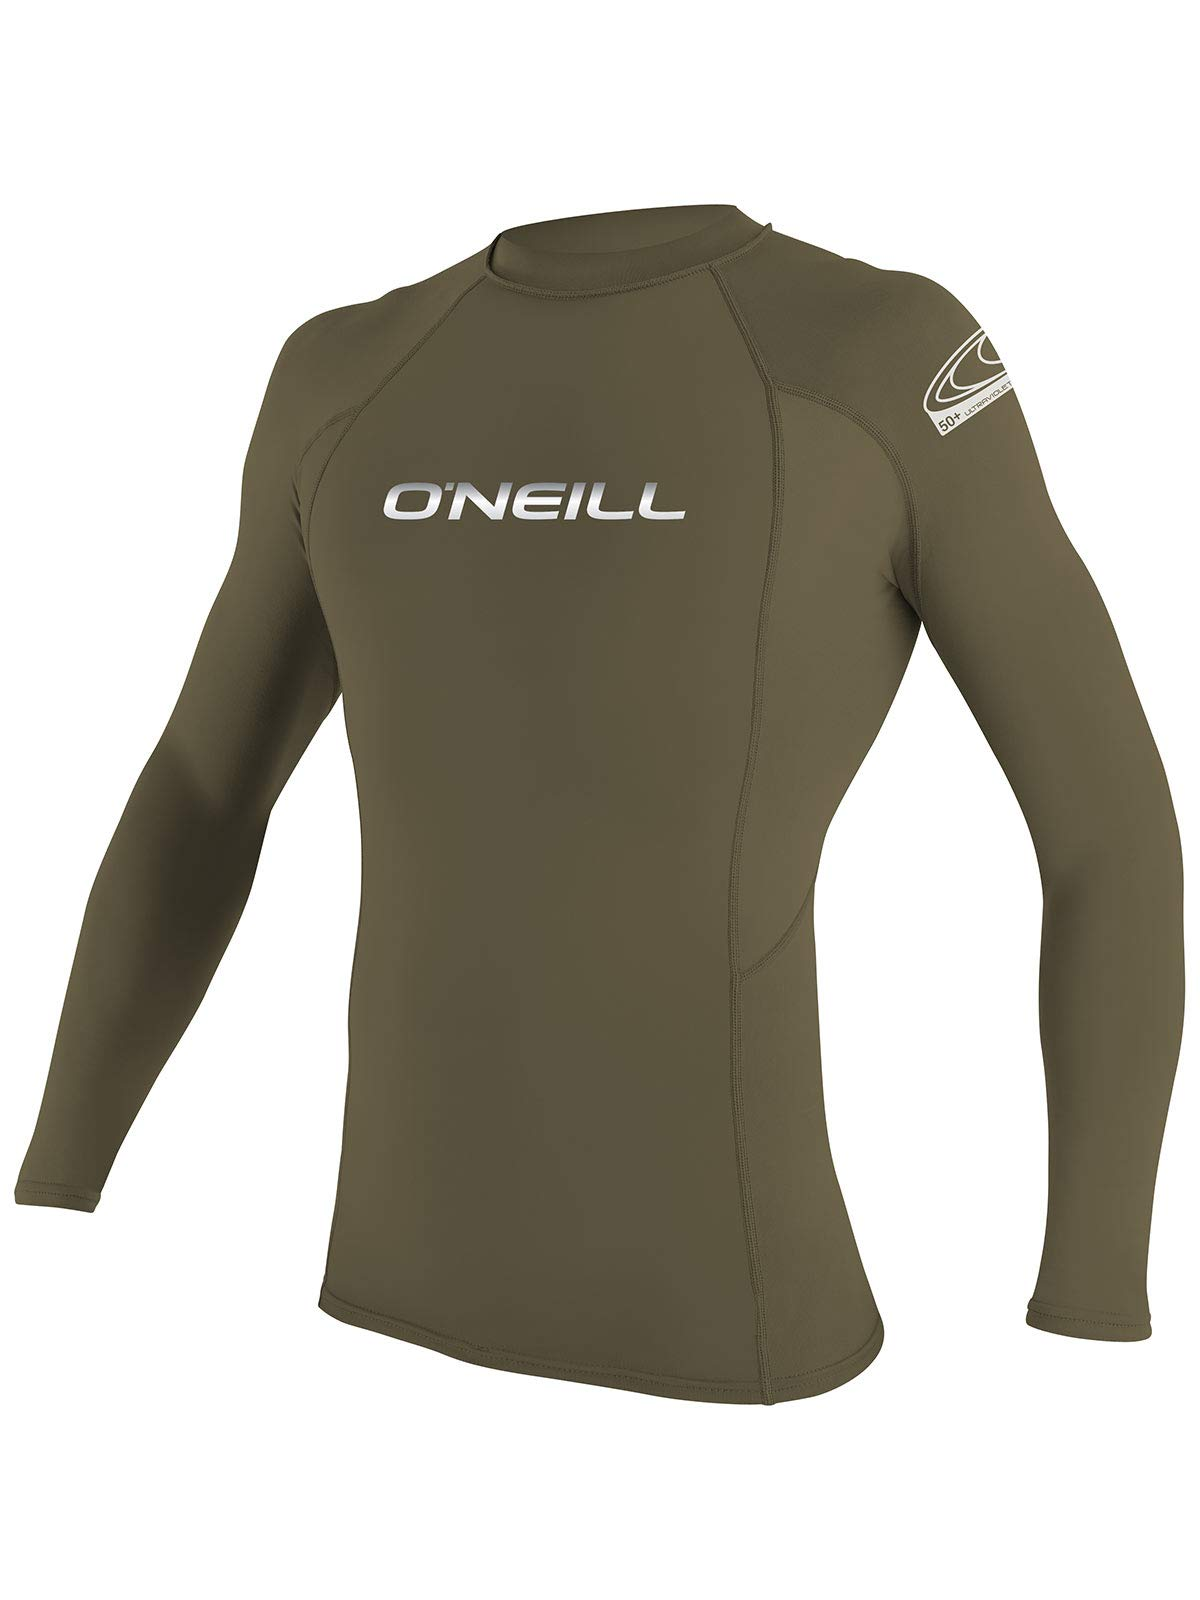 O'Neill Men's Basic Skins Long Sleeve Rashguard S Khaki (3342IB) by O'Neill Wetsuits